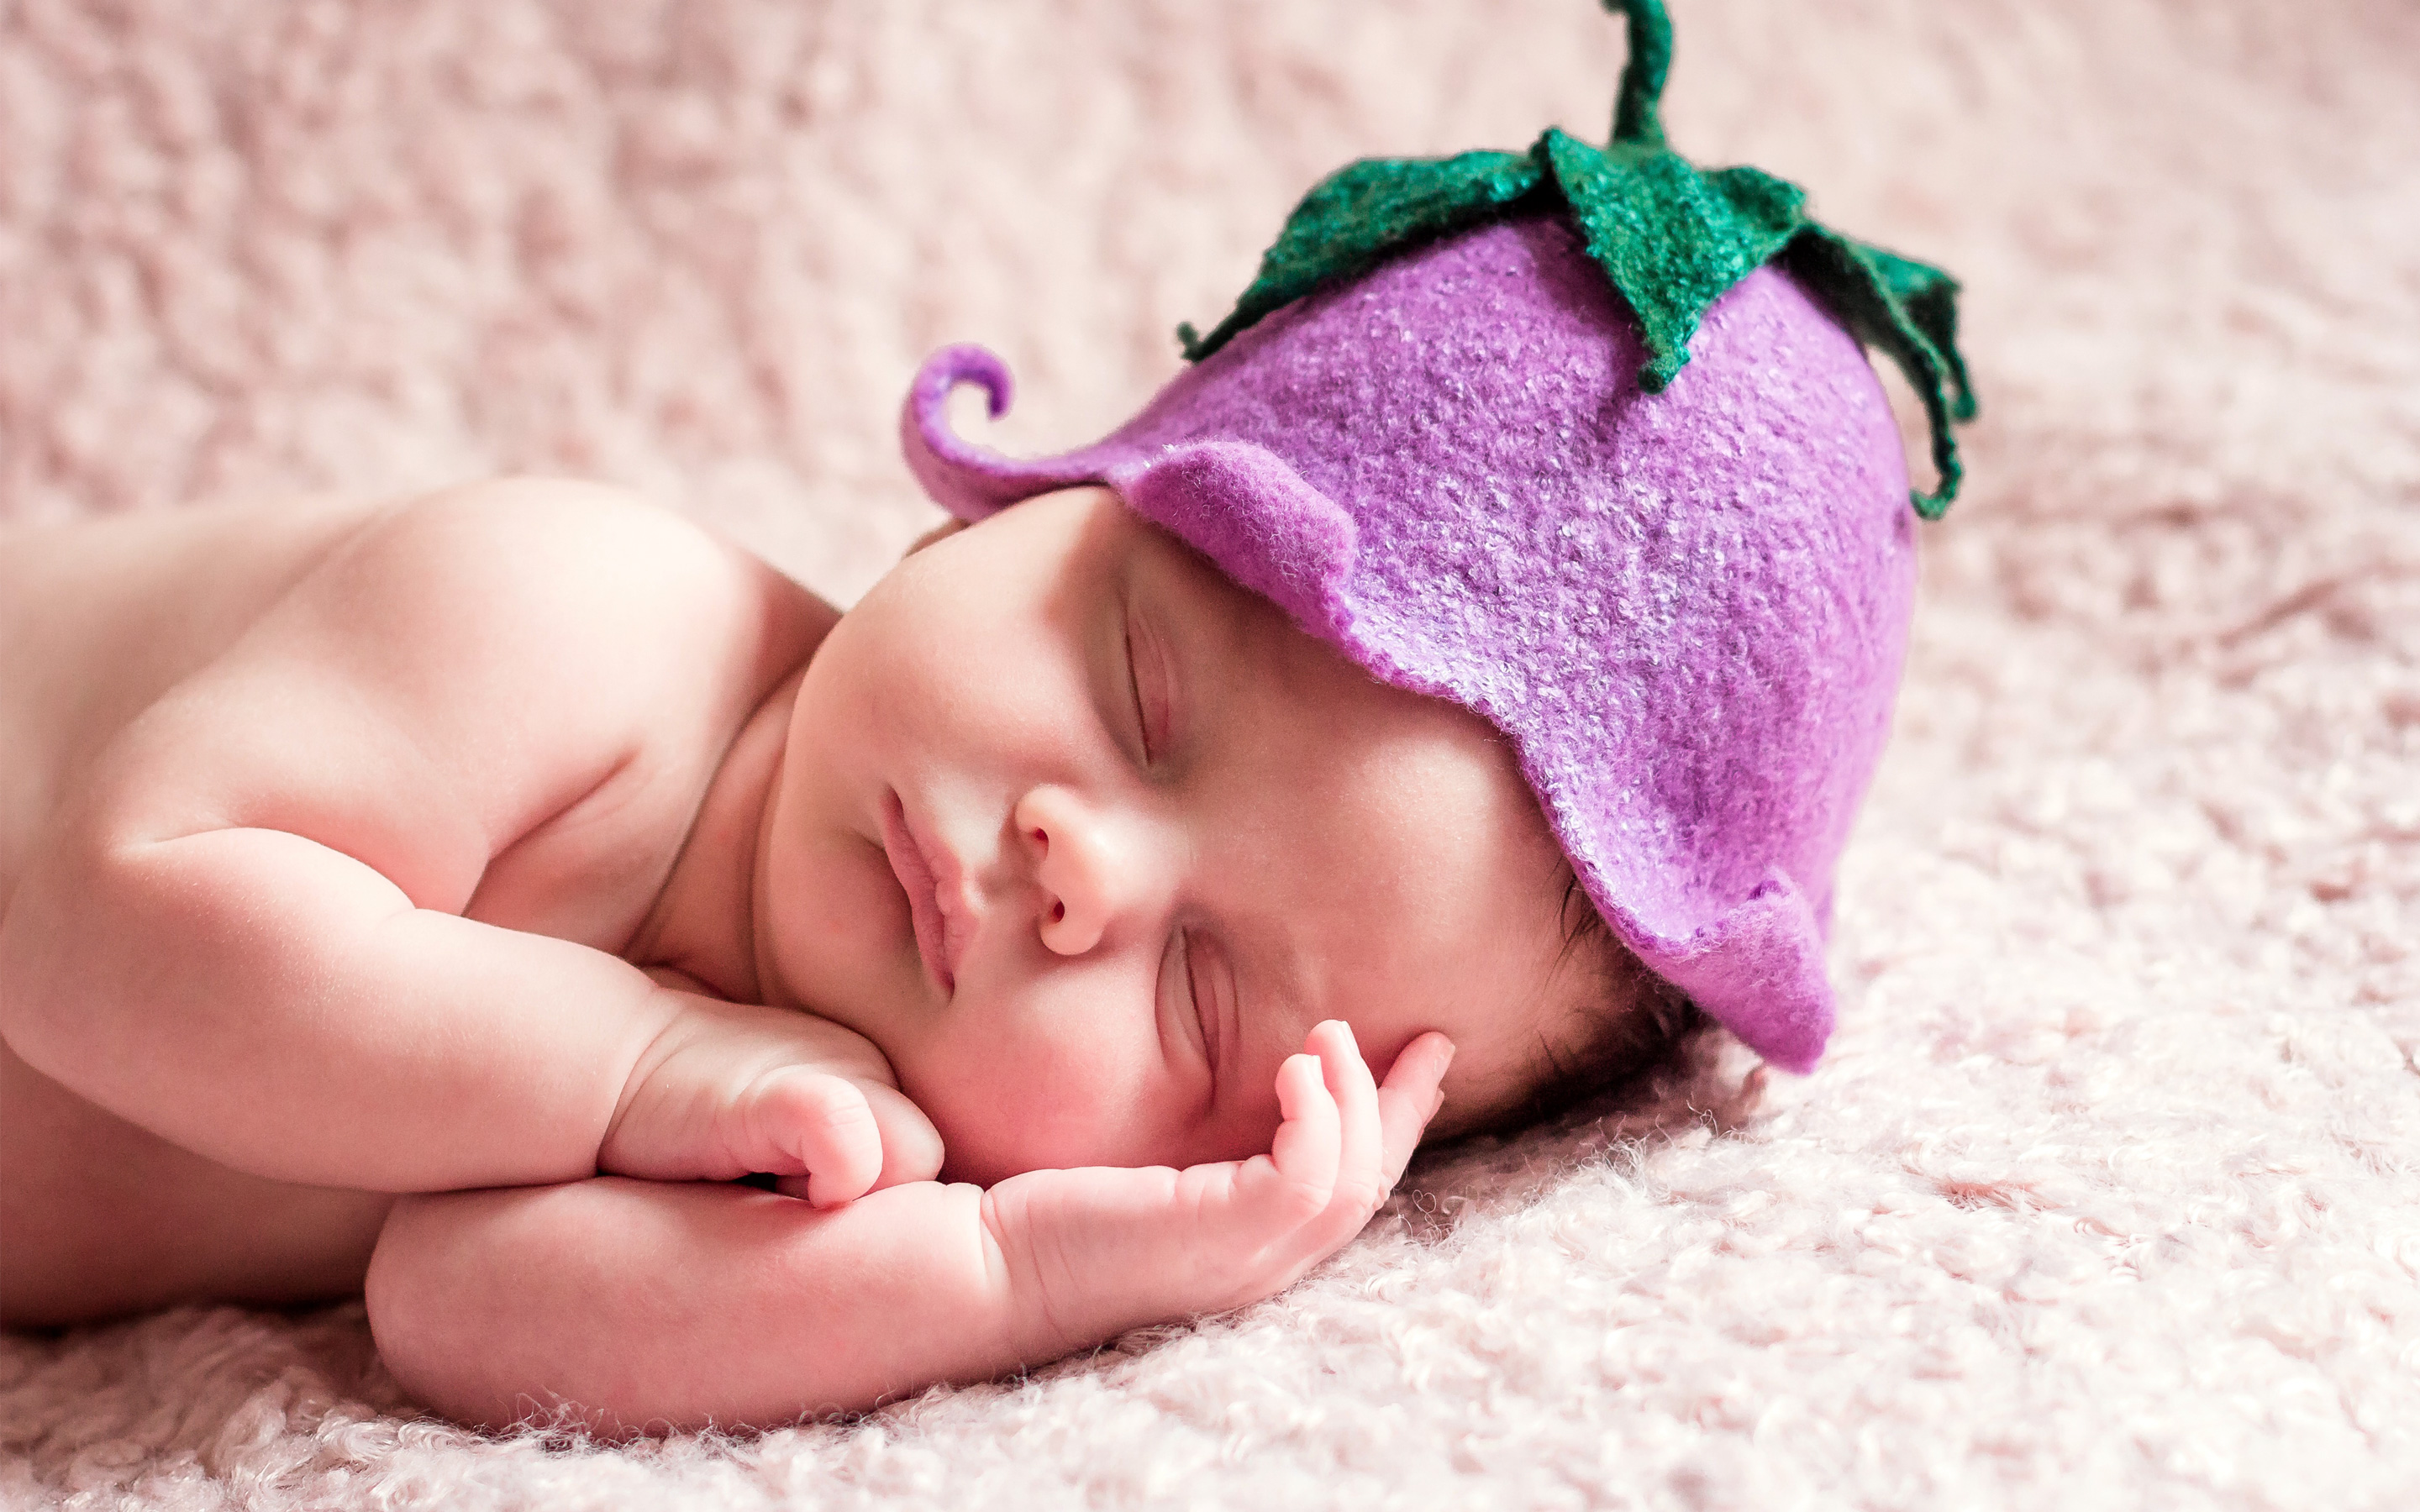 New Born Baby Wallpapers Cute Sleeping Newborn Baby Wallpapers Hd Wallpapers Id 17857